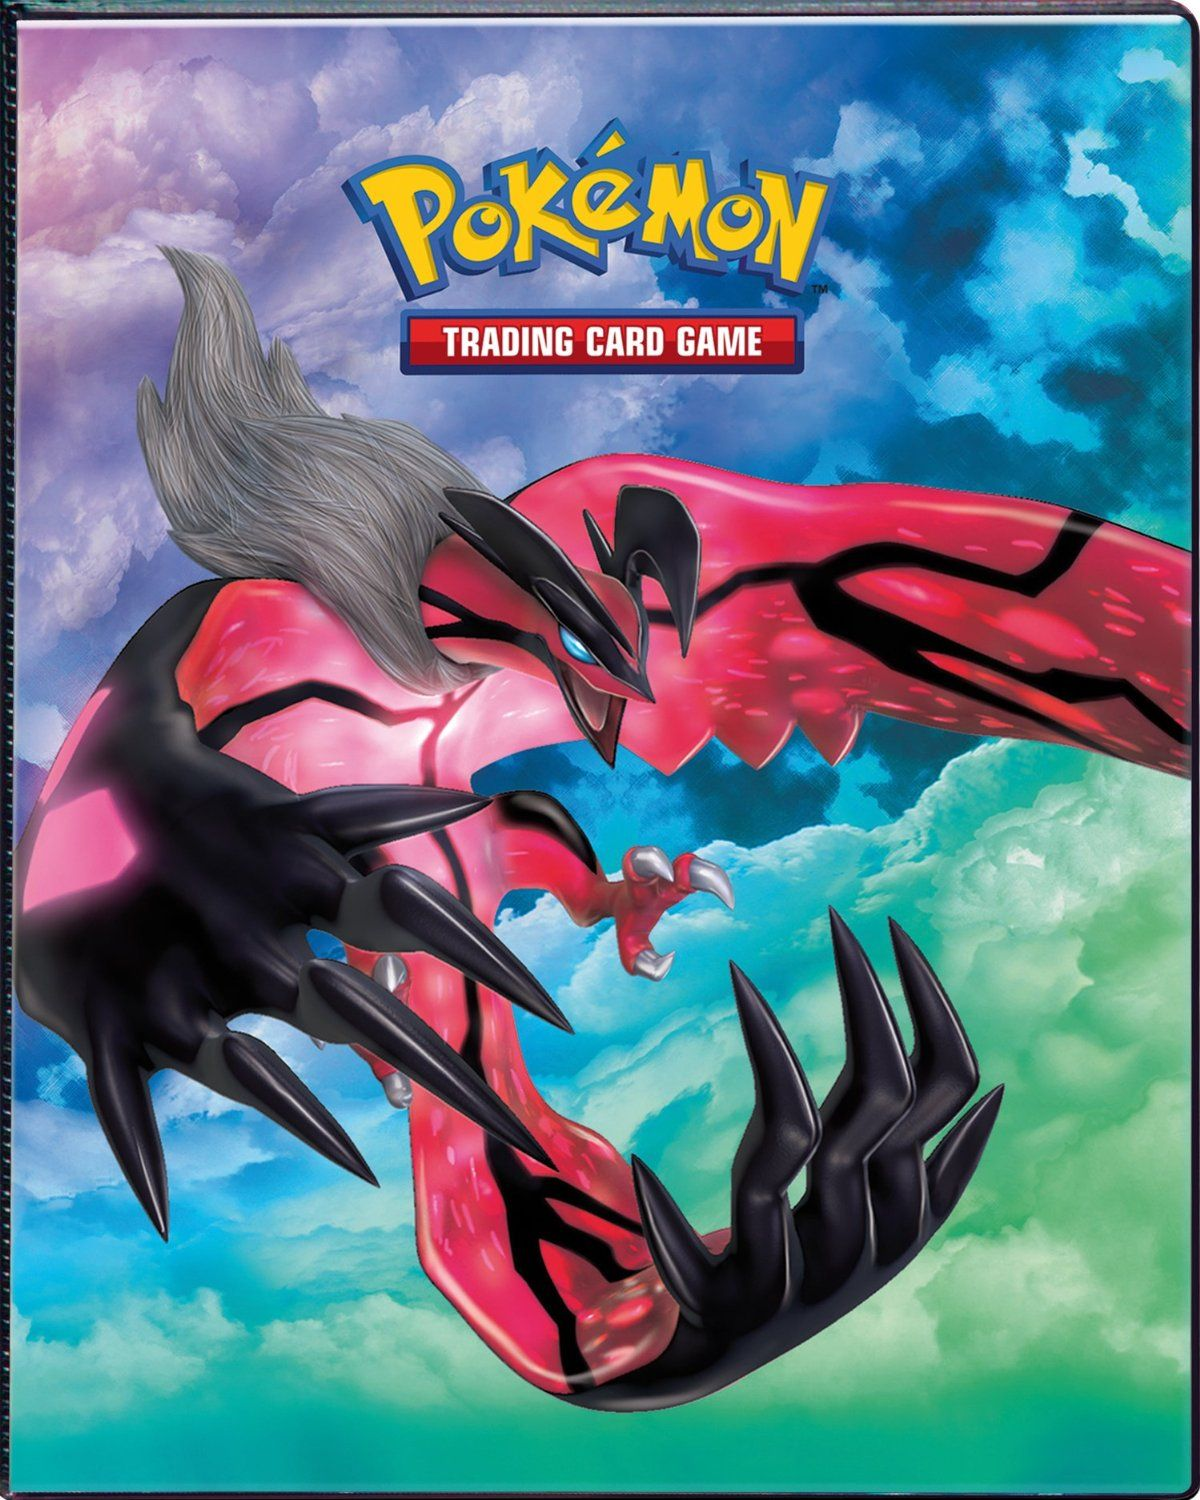 graphic about Pokemon Binder Cover Printable called Pin by means of melissa hull upon Pokemon Pokemon binder, Pokemon